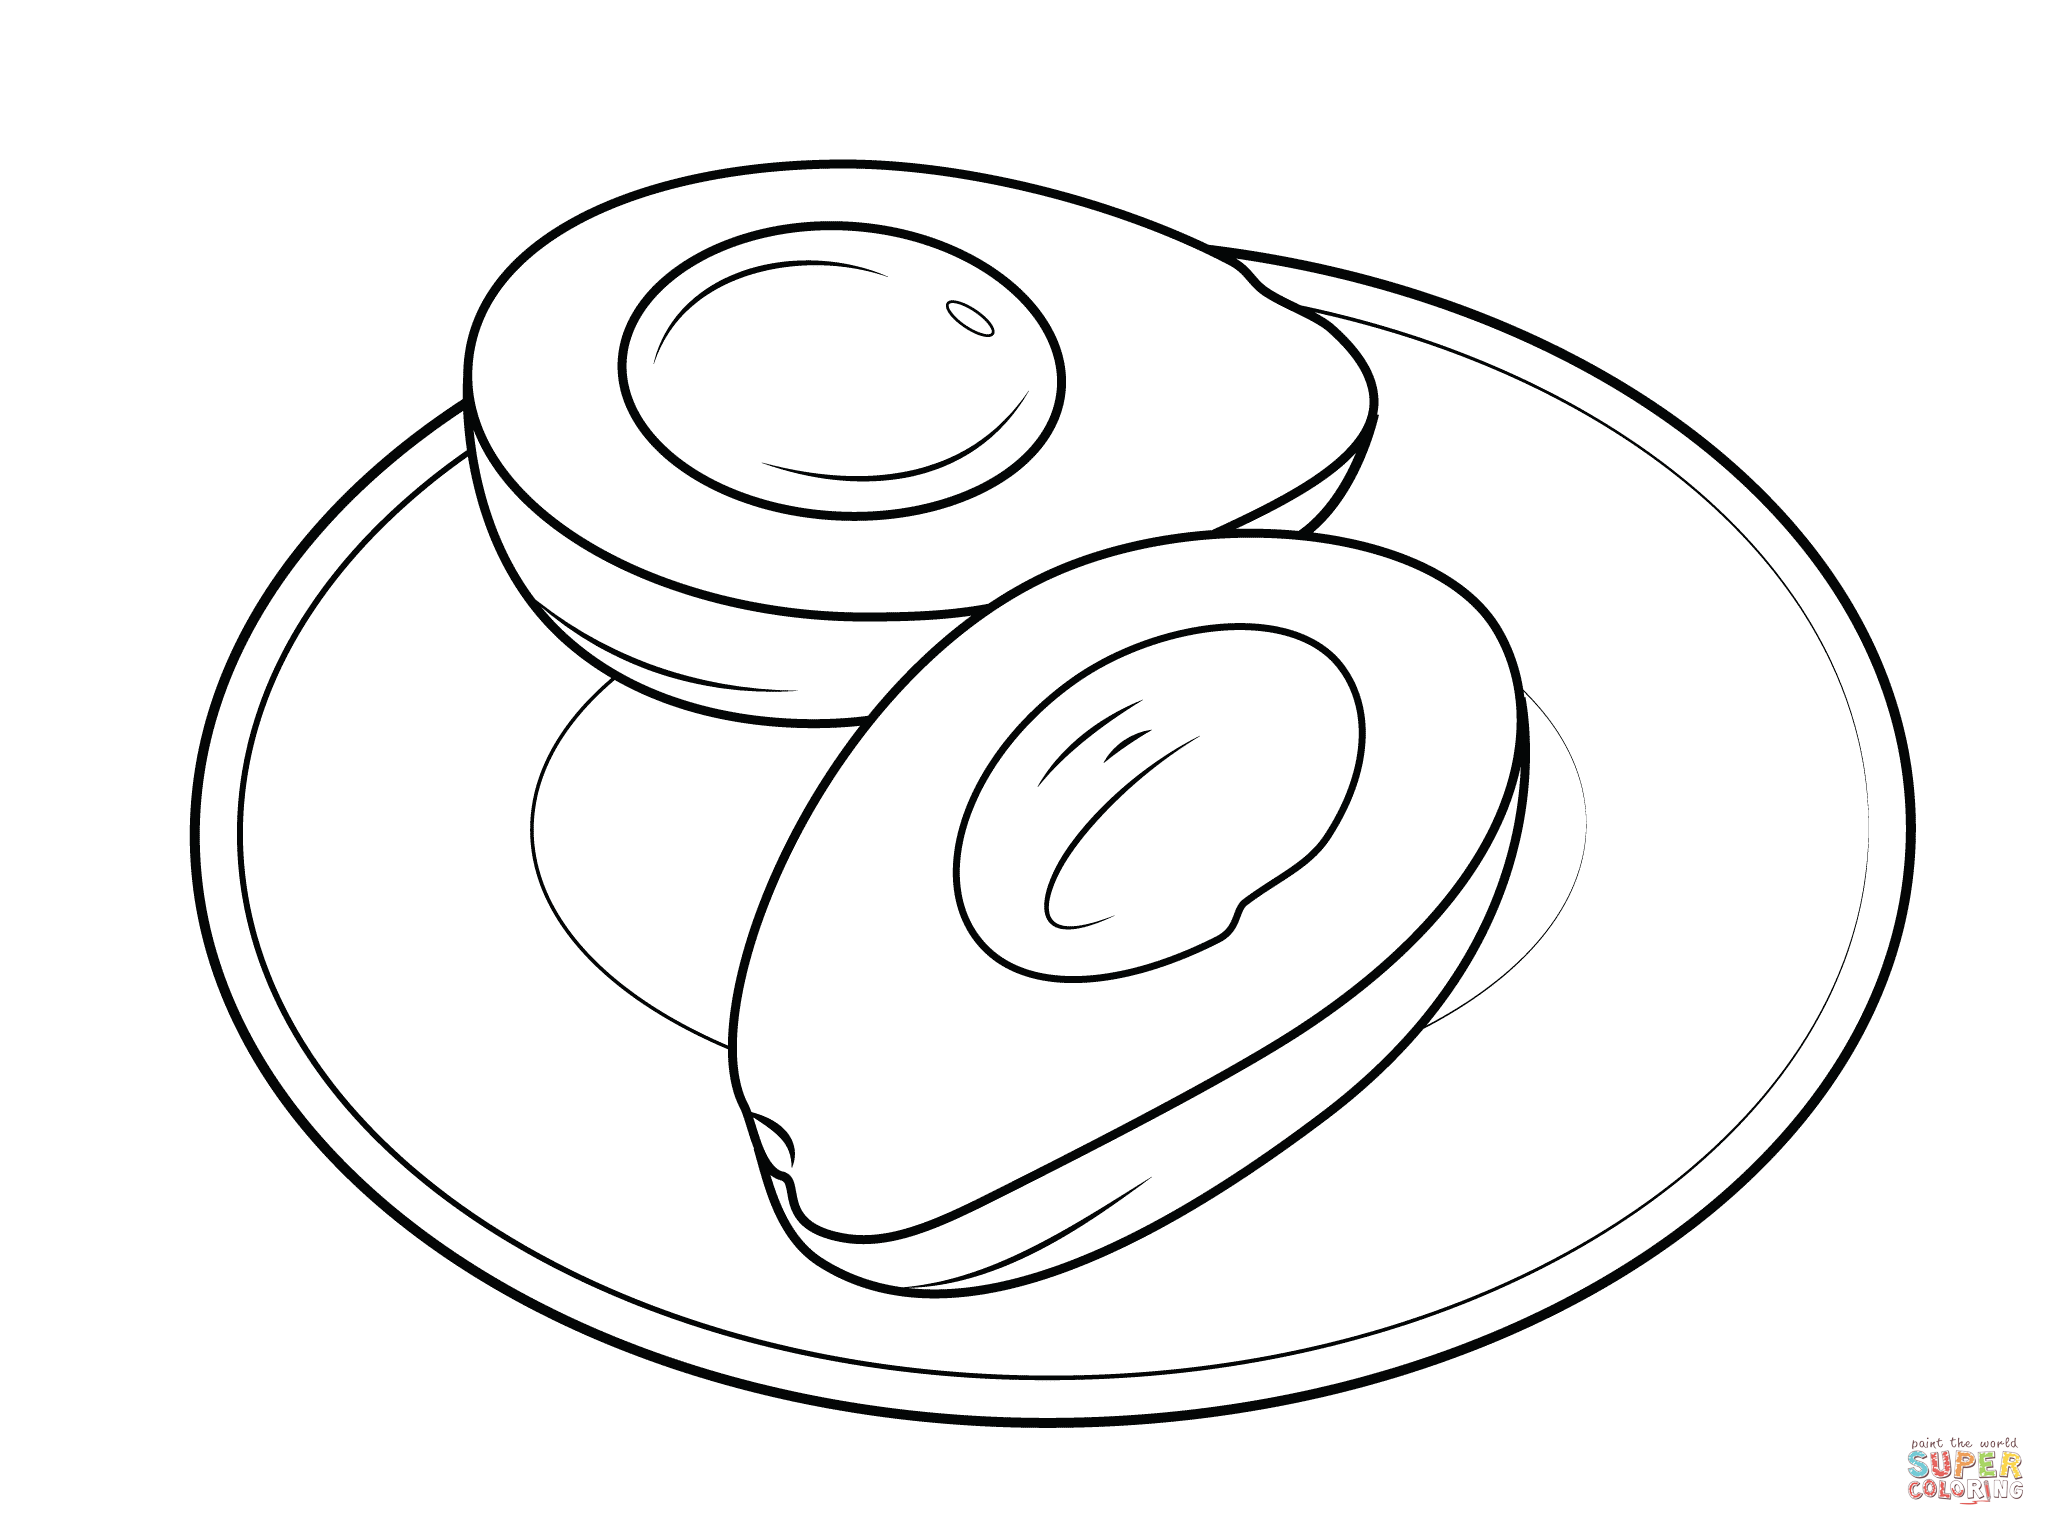 2046x1526 Avocado On A Plate Coloring Page Free Printable Coloring Pages